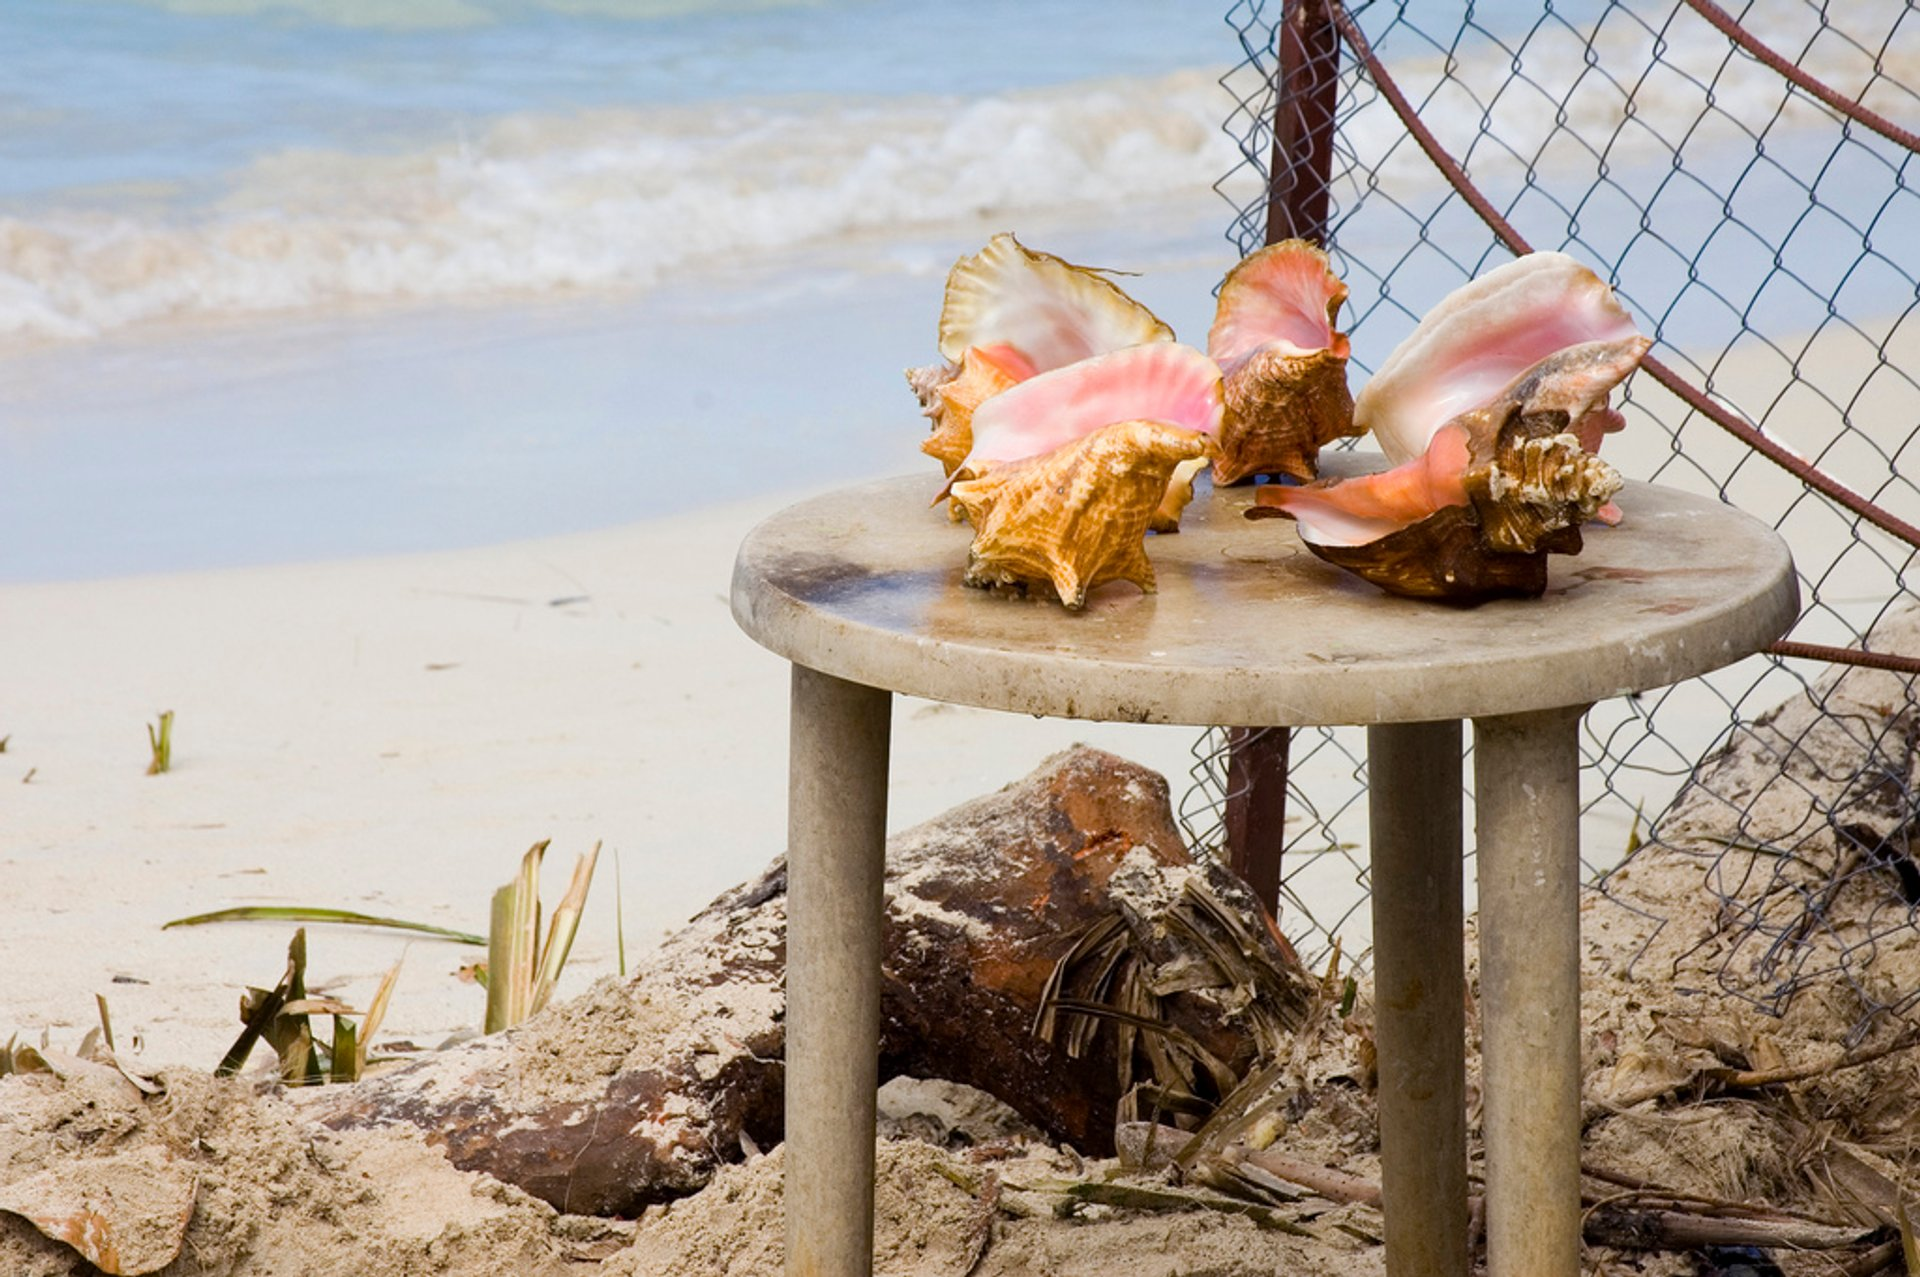 Queen Conch Season in Jamaica 2020 - Best Time